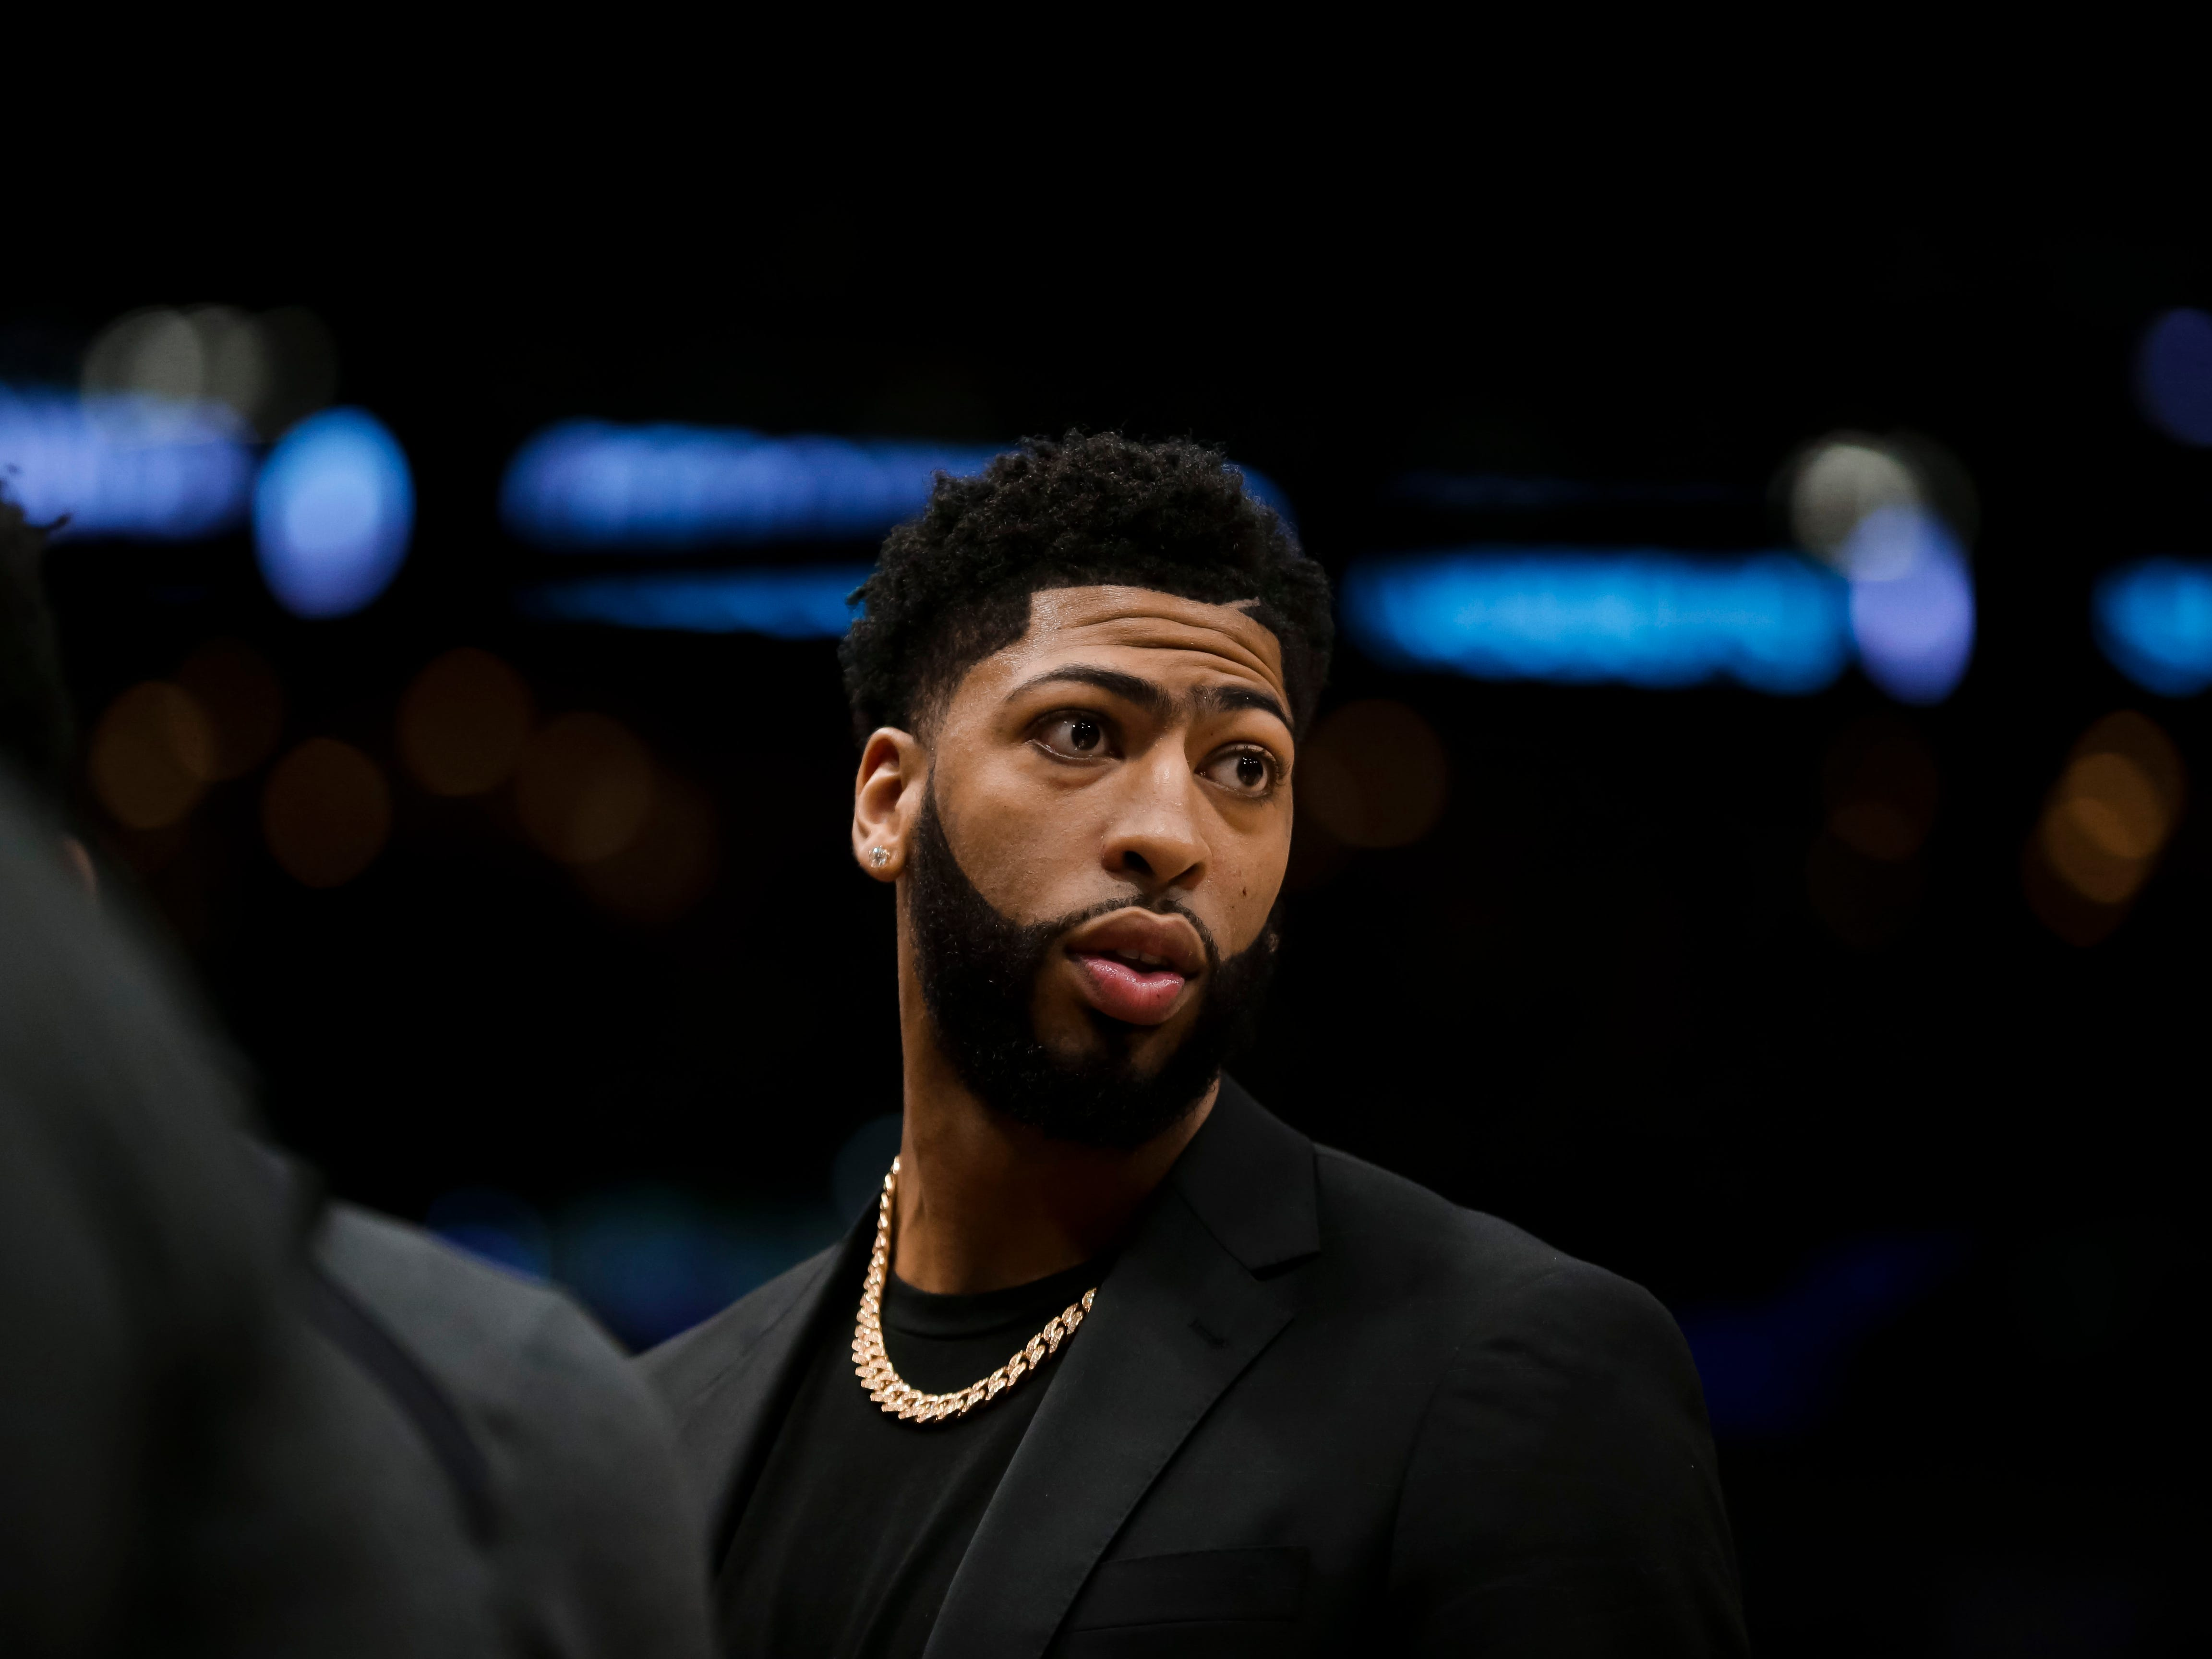 Feb 4, 2019; New Orleans, LA, USA; New Orleans Pelicans forward Anthony Davis (23) during a first quarter timeout against the Indiana Pacers at the Smoothie King Center.